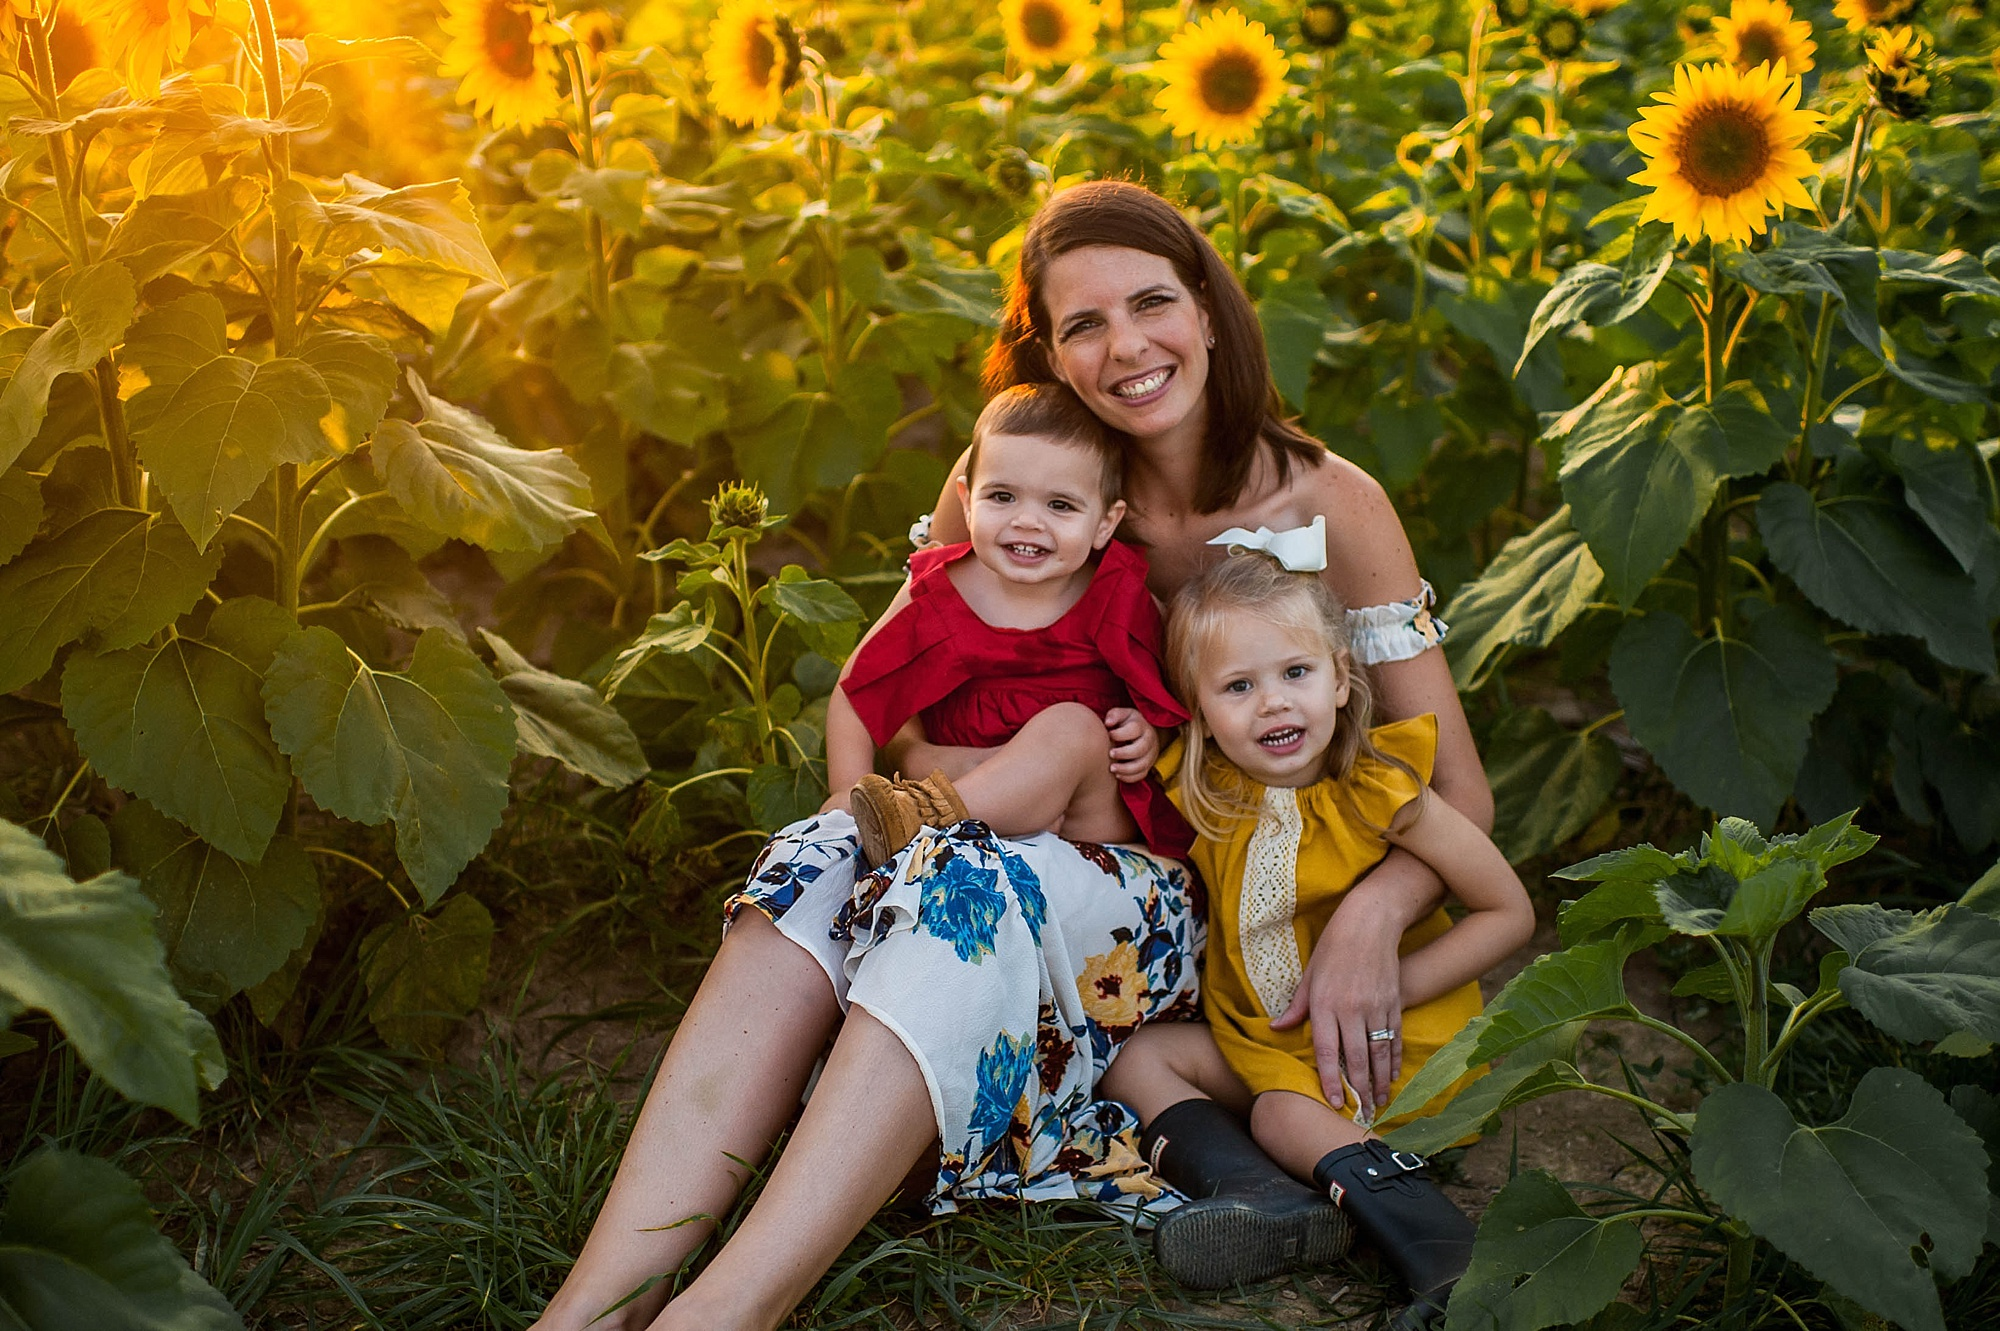 lauren-grayson-photography-cleveland-ohio-photographer-sunflower-fields-sunset-golden-hour-photo-shoot-mommy-and-me-family-child-photographer_0559.jpg